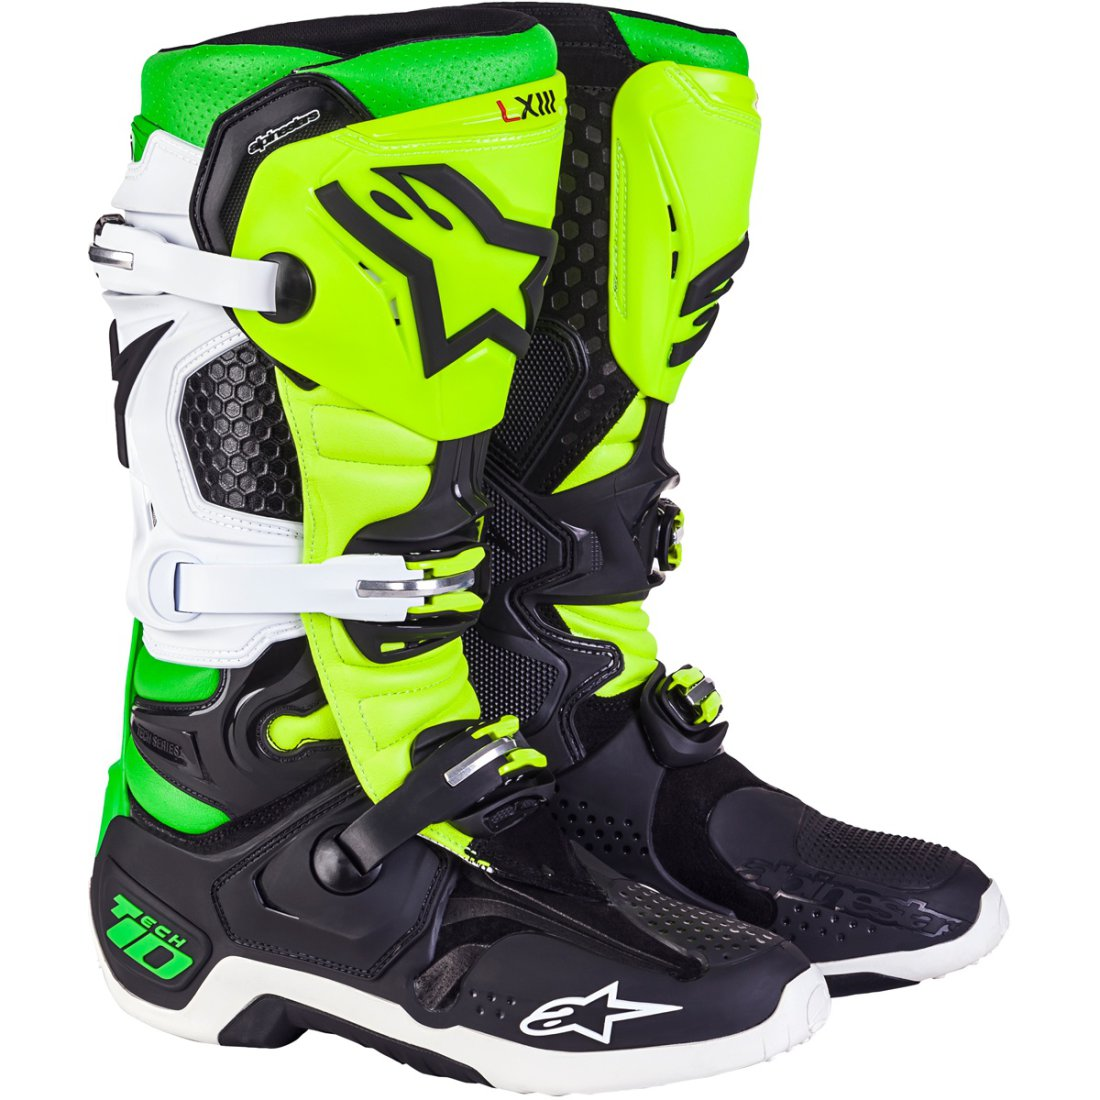 bottes alpinestars tech 10 vegas le black white yellow fluo green motocard. Black Bedroom Furniture Sets. Home Design Ideas